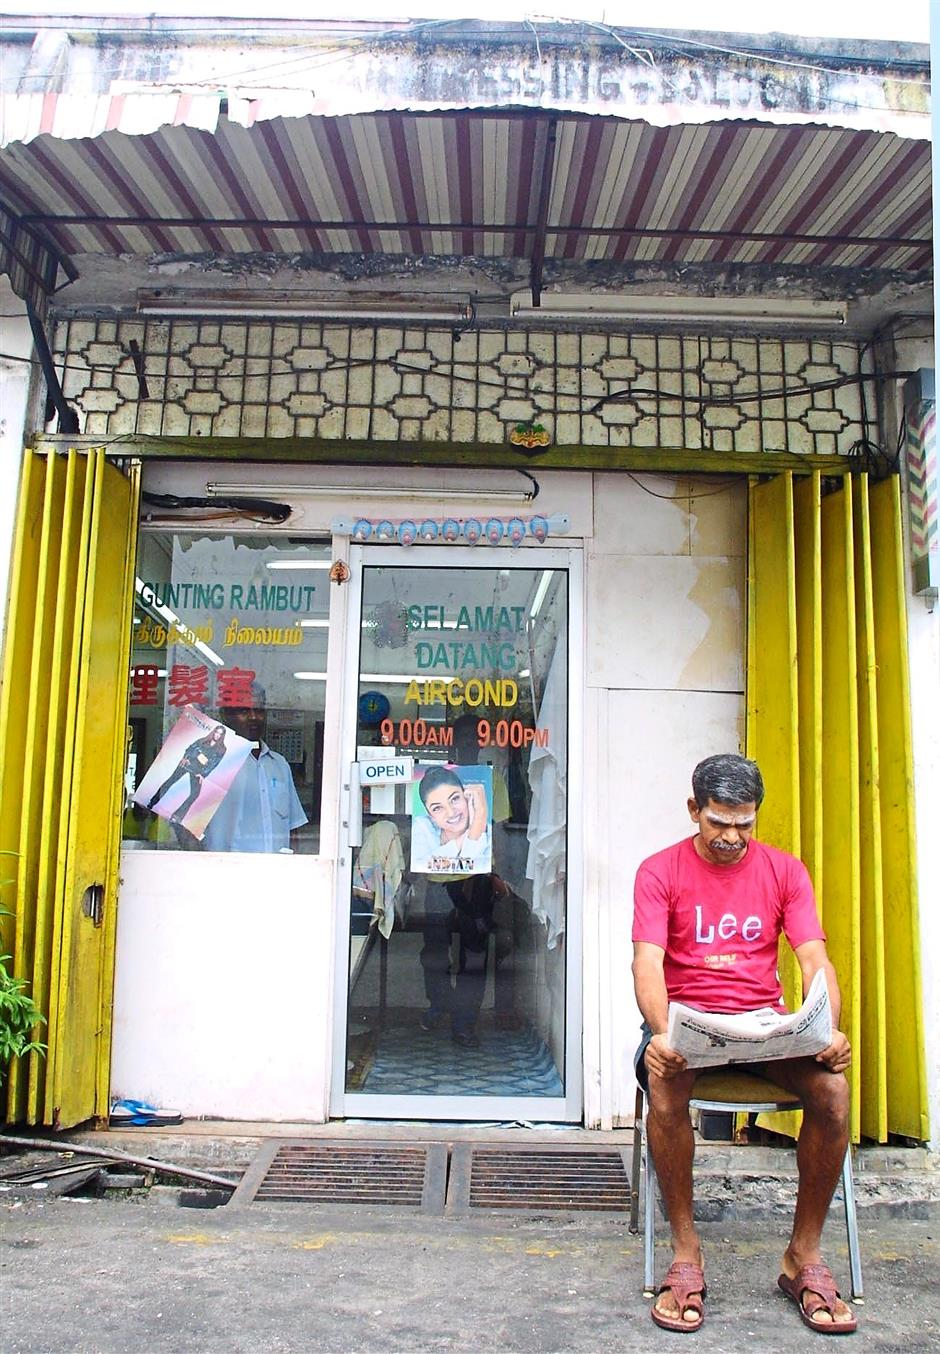 Support system: Small businesses like this barber shop in Malaysia can find support in business networks and associations.